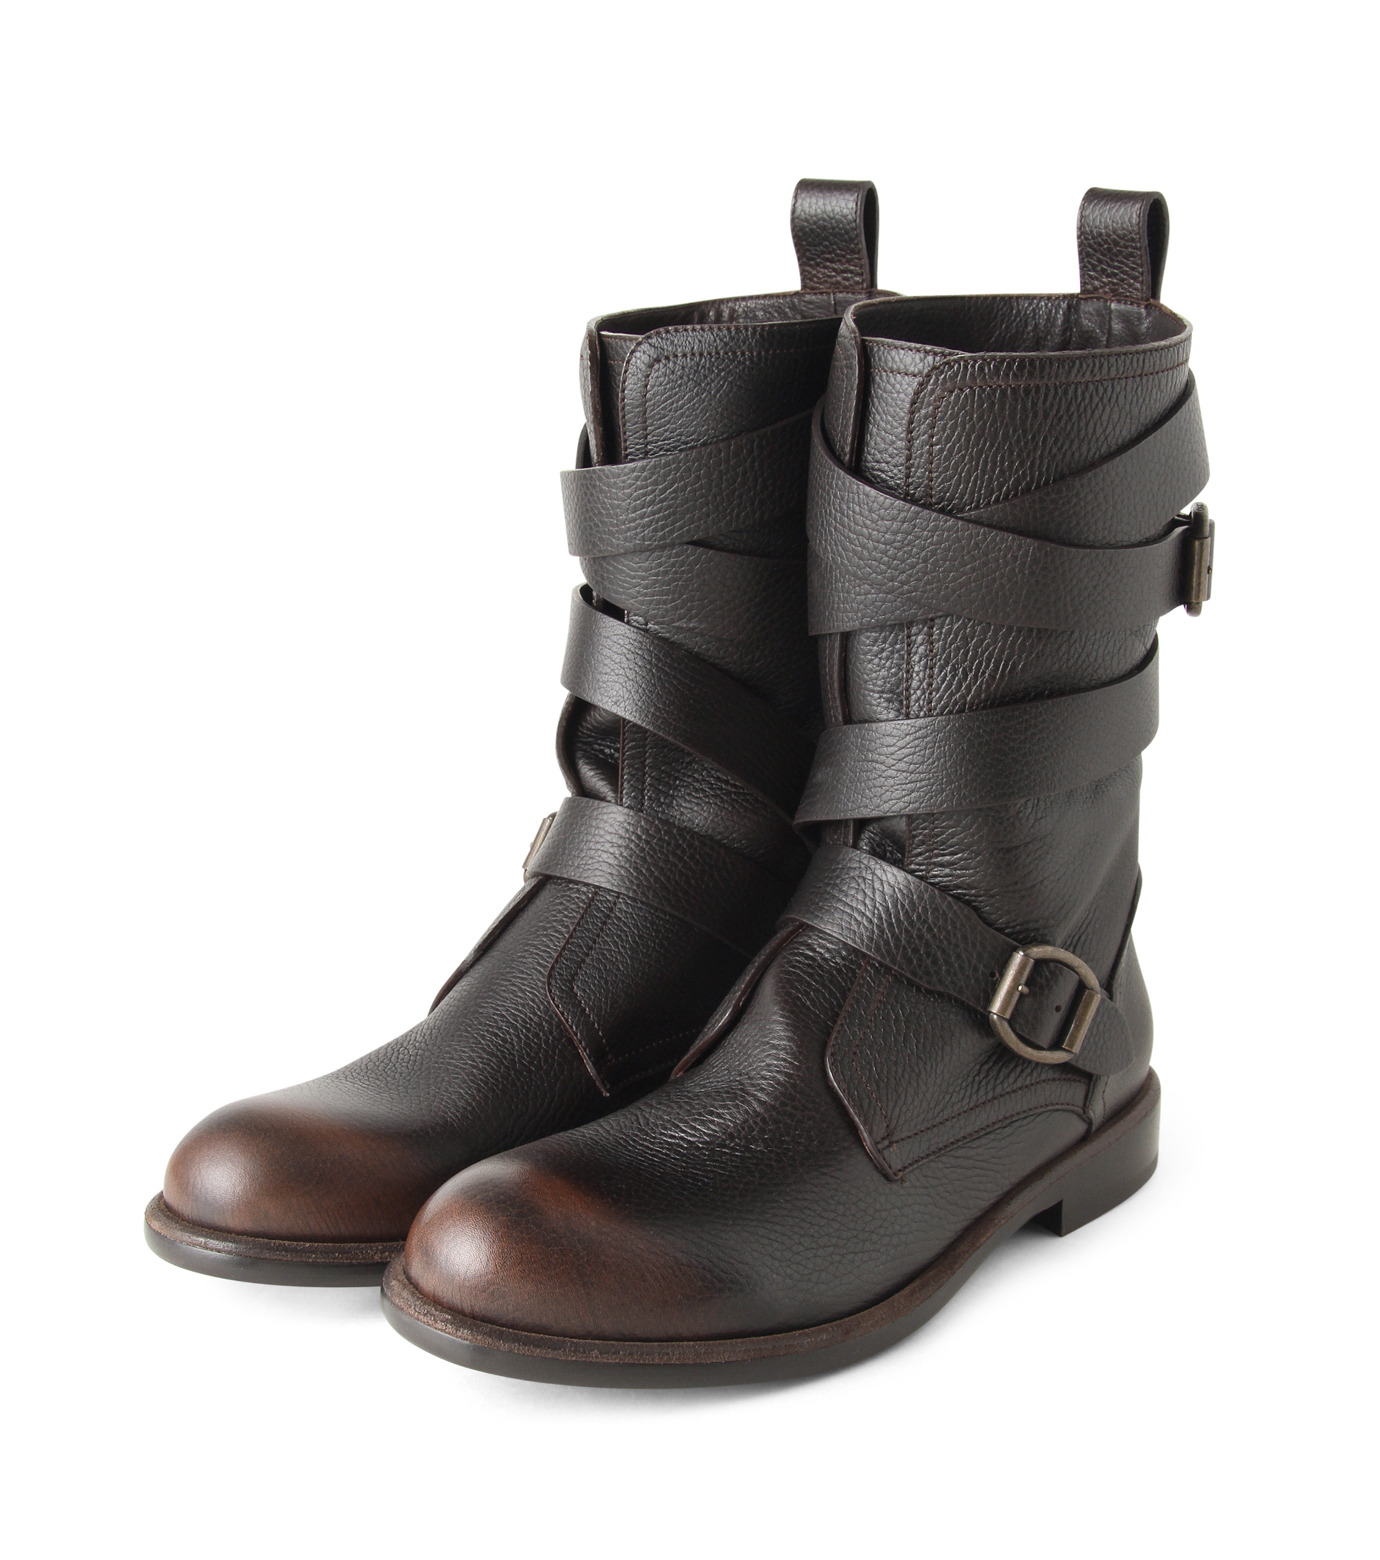 Jimmy Choo(ジミーチュウ)のBelted Boots-BROWN(ブーツ/boots)-152RIDLE-GBL-42 拡大詳細画像4